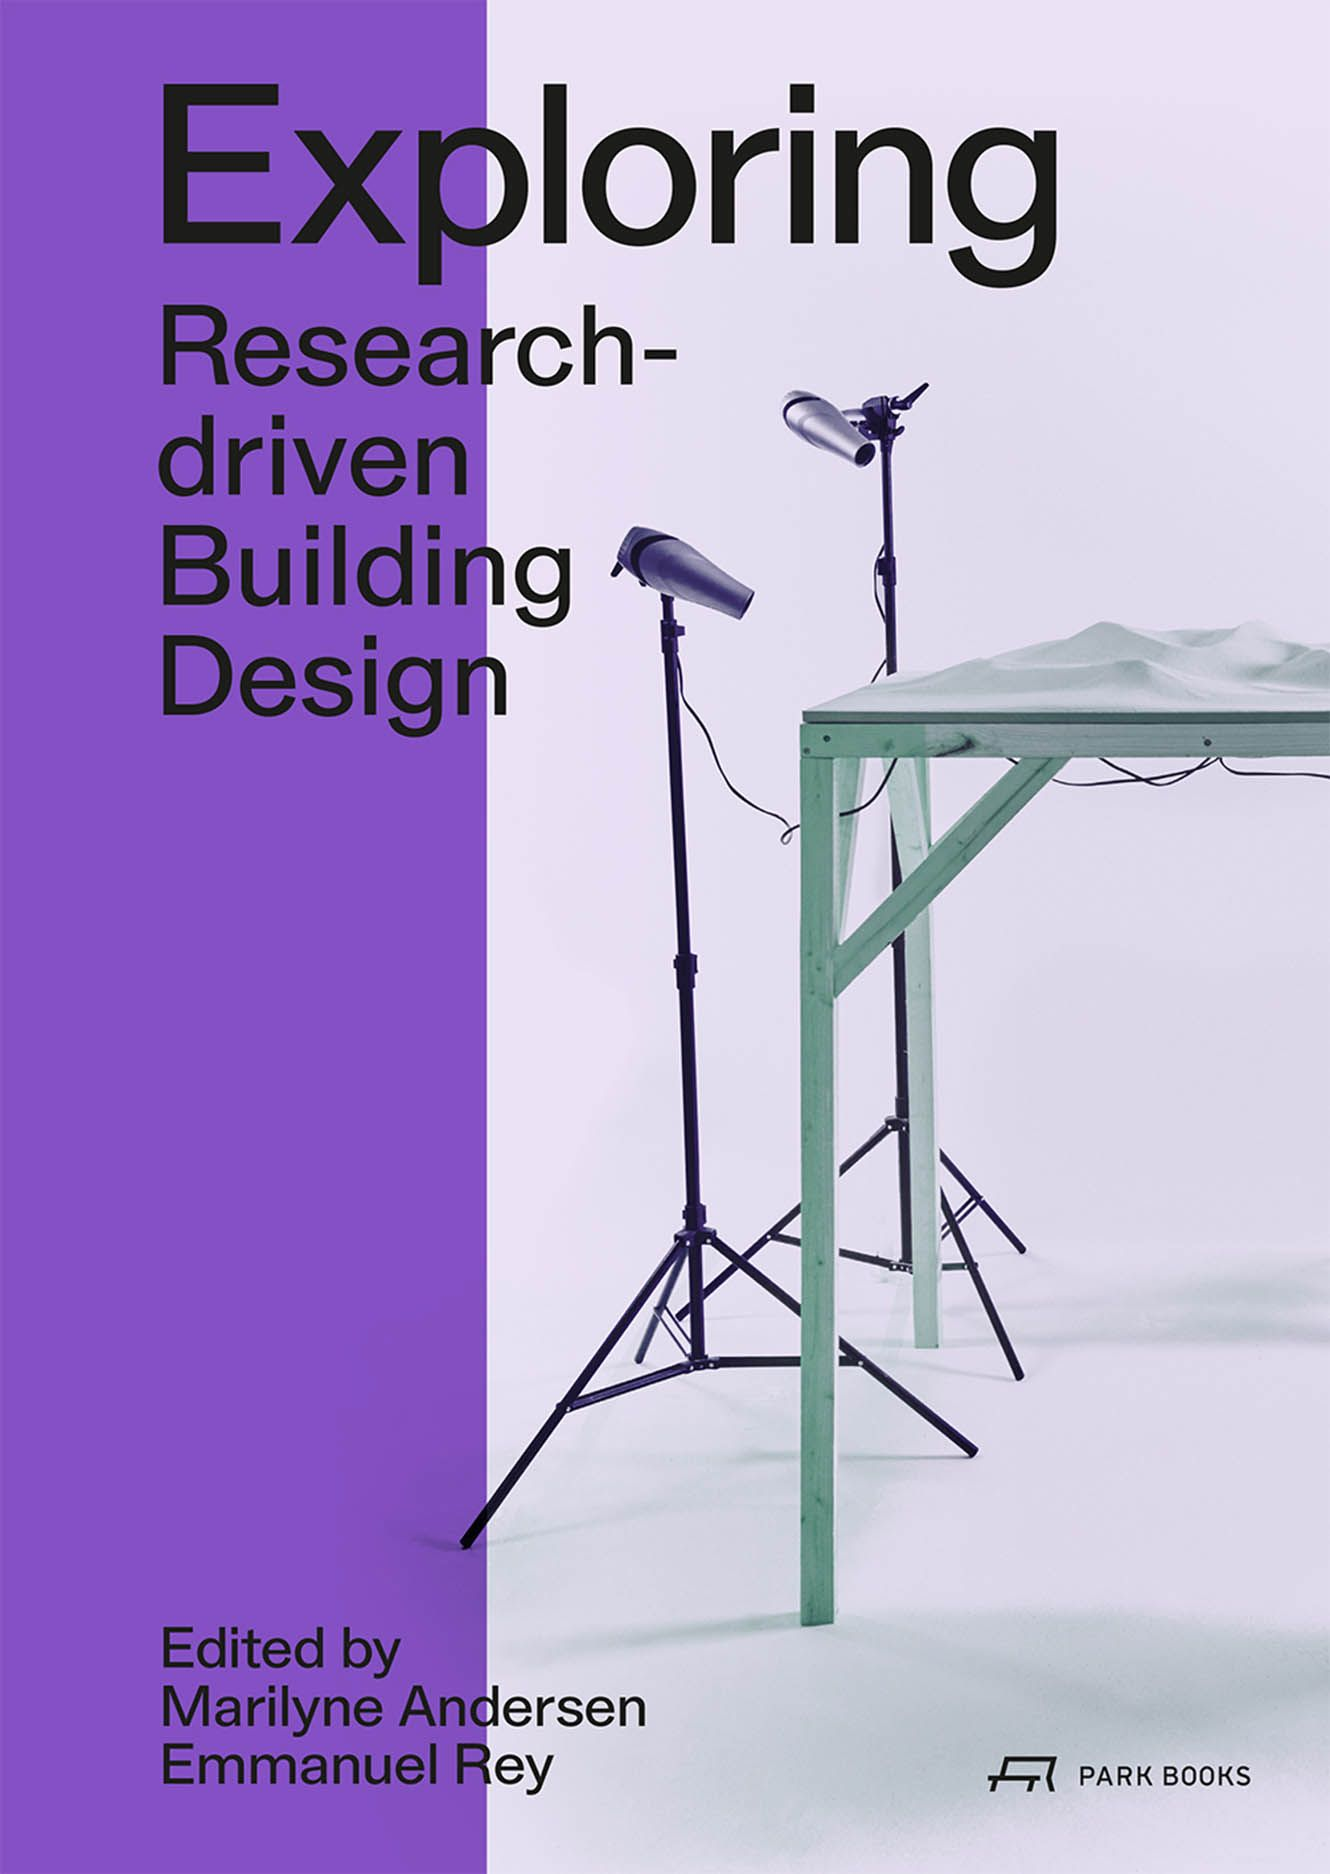 Exploring: Research-driven Building Design